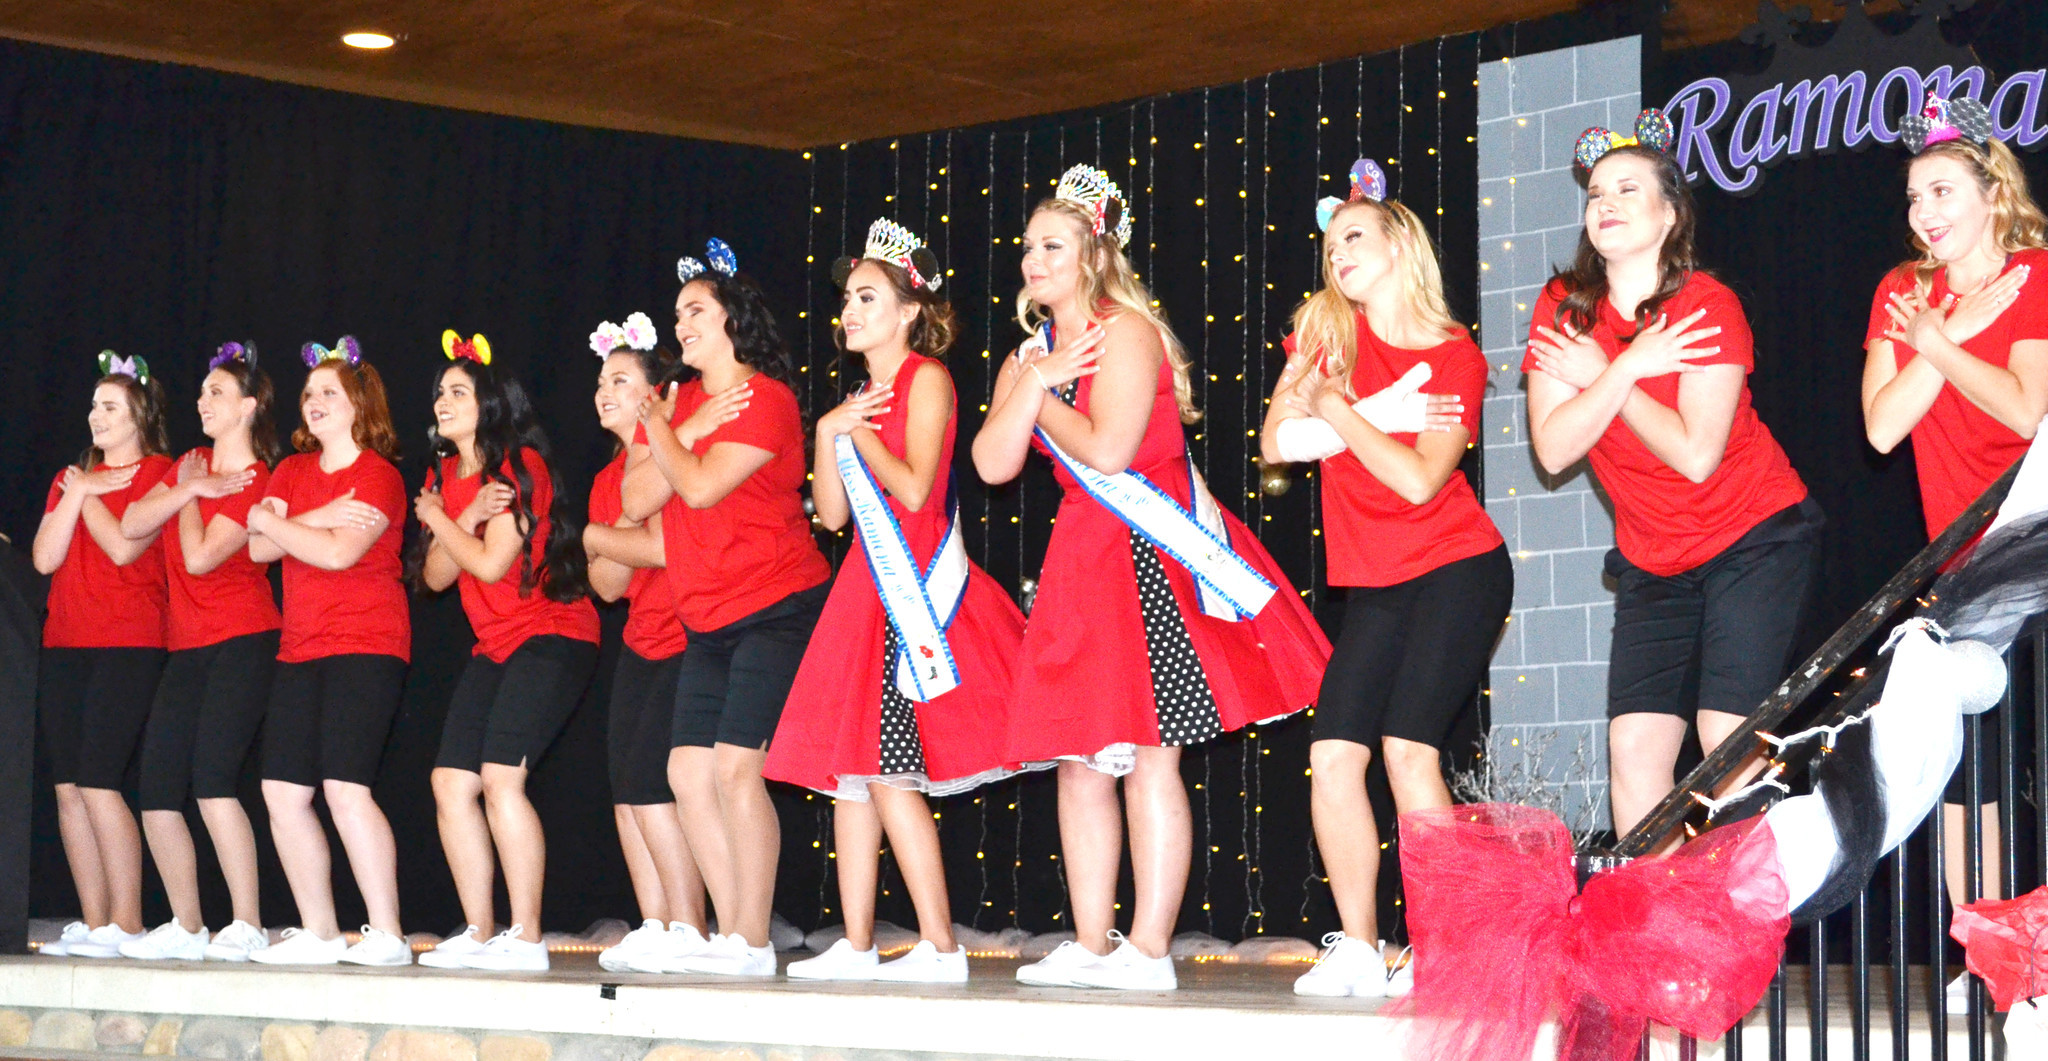 2016 Miss Ramona Chersten Sandvik and Teen Miss Ashley Dominguez, wearing dresses, and Miss Ramona and Teen Miss contestants perform the opening dance routine in the Disney-themed pageant. The contestants wear Mickey Mouse ears that they decorated.